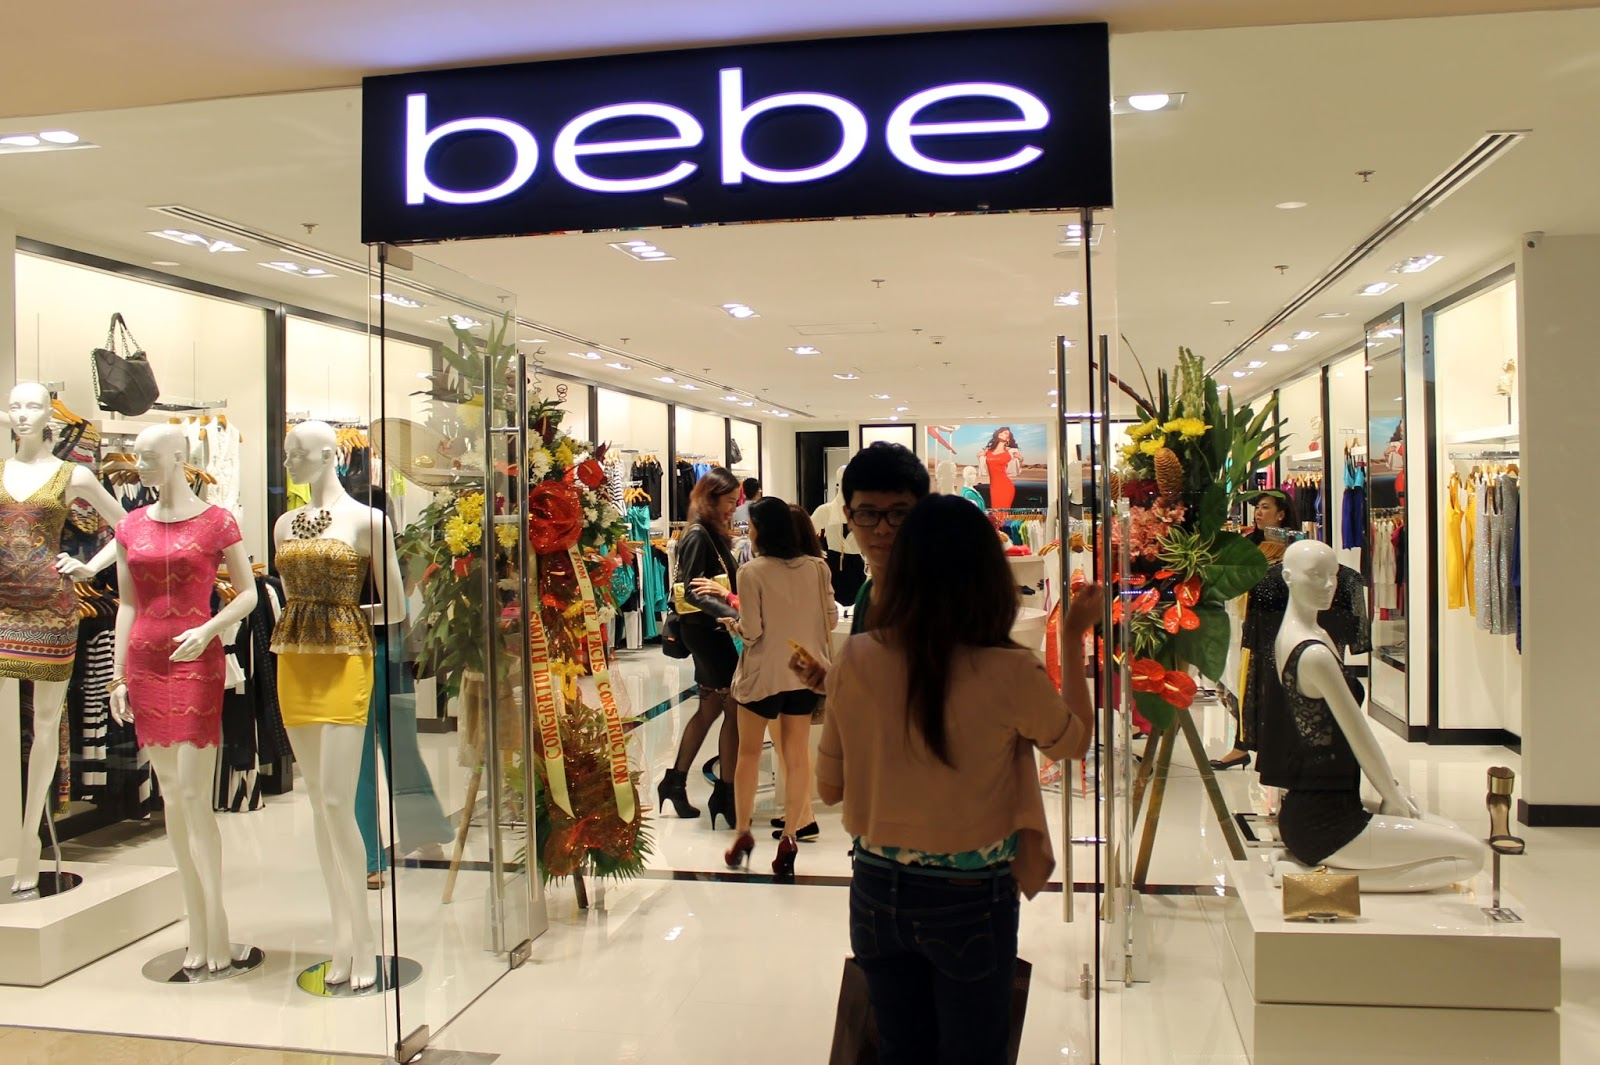 k Followers, Following, 2, Posts - See Instagram photos and videos from bebe (@bebe_stores).